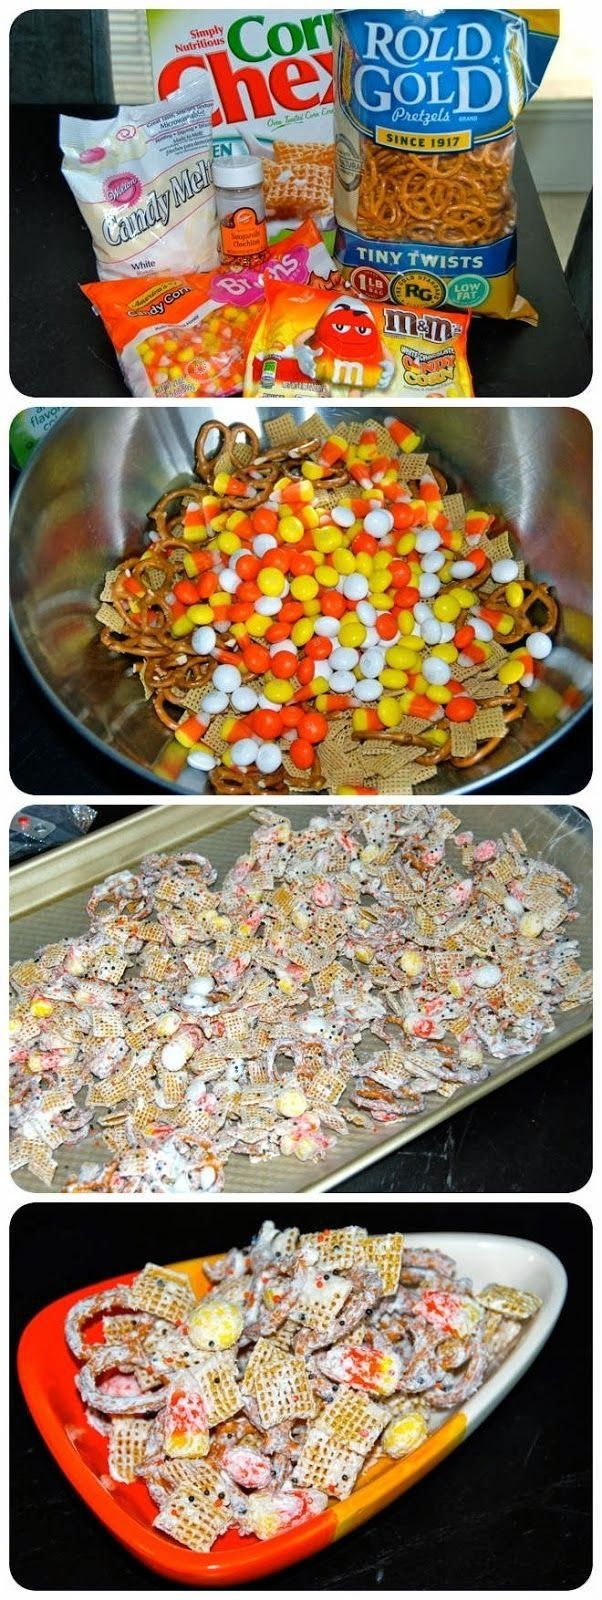 For my GF / Peanut free fam I'd have to change a couple things- like GF pretzels, no M&M's. Maybe add colored candy melt to make it more Halloween-y